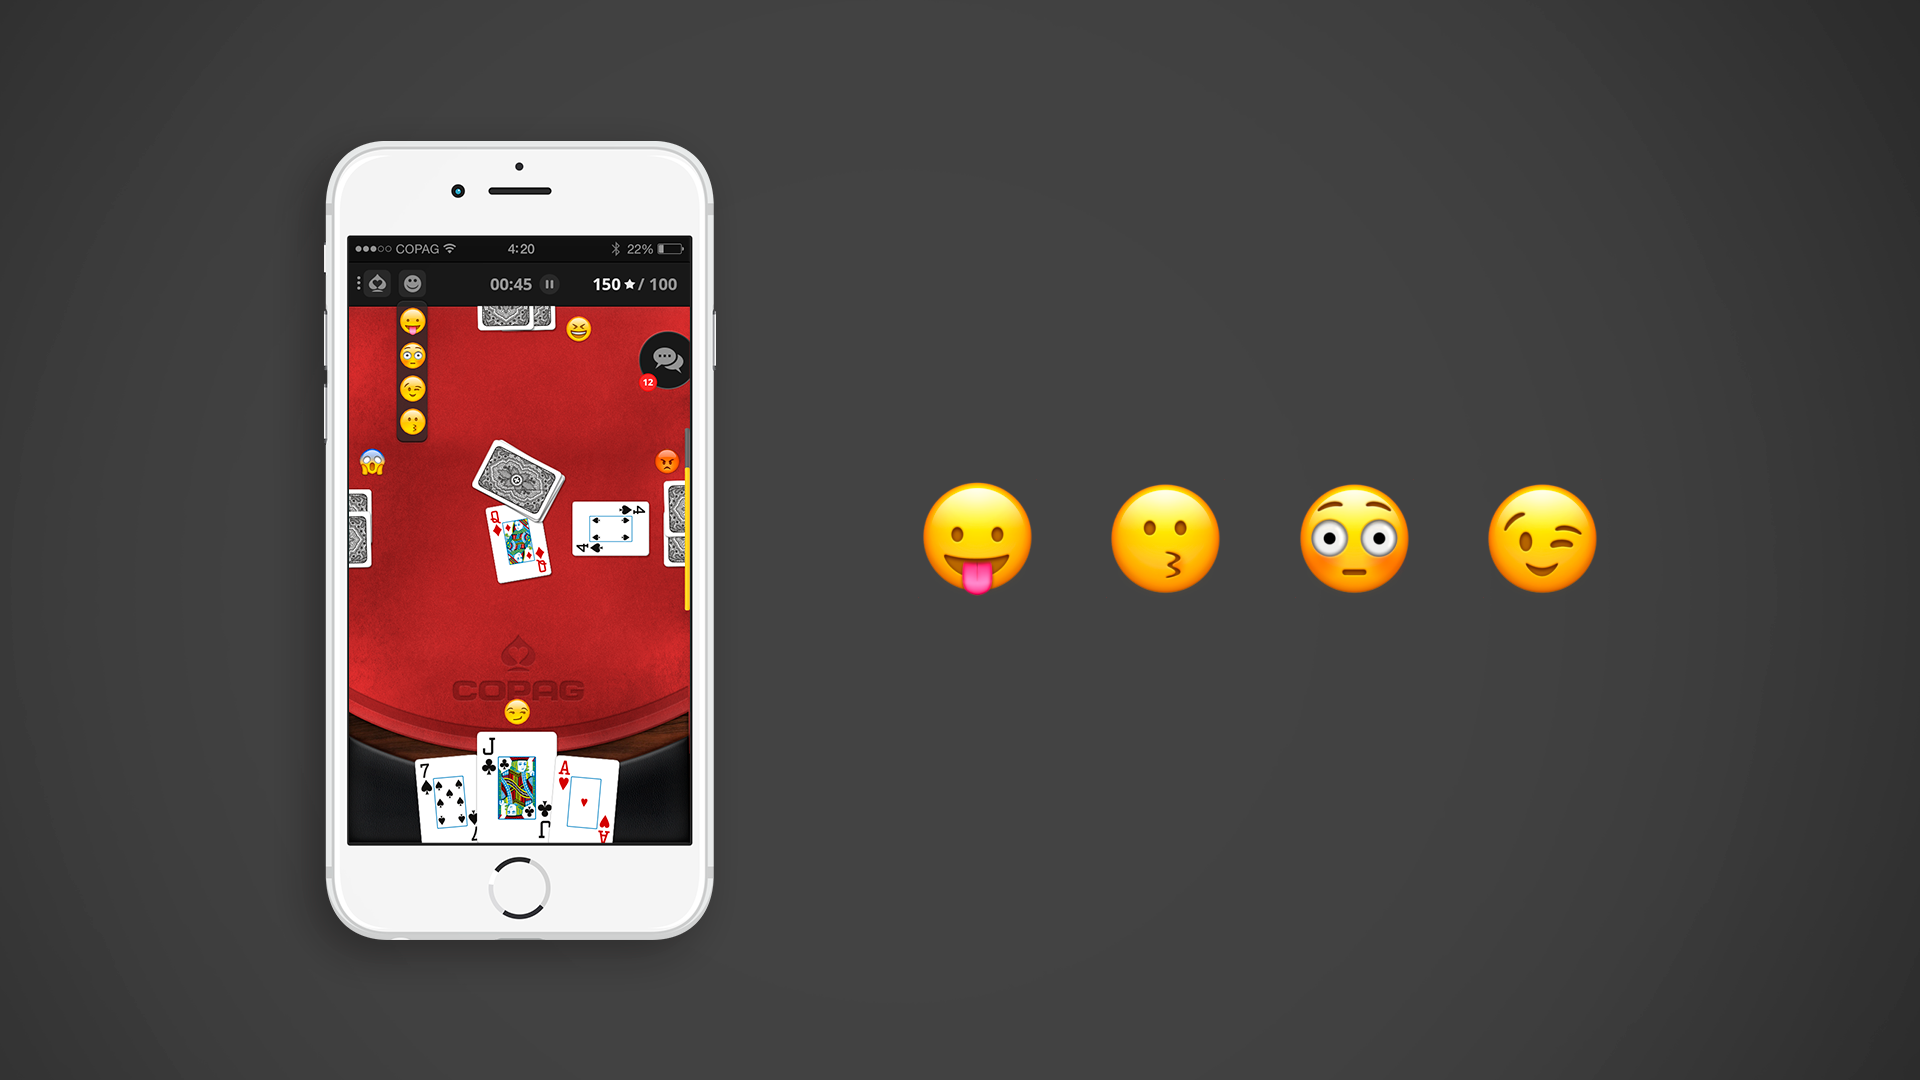 Emojis to represent AI playing reactions